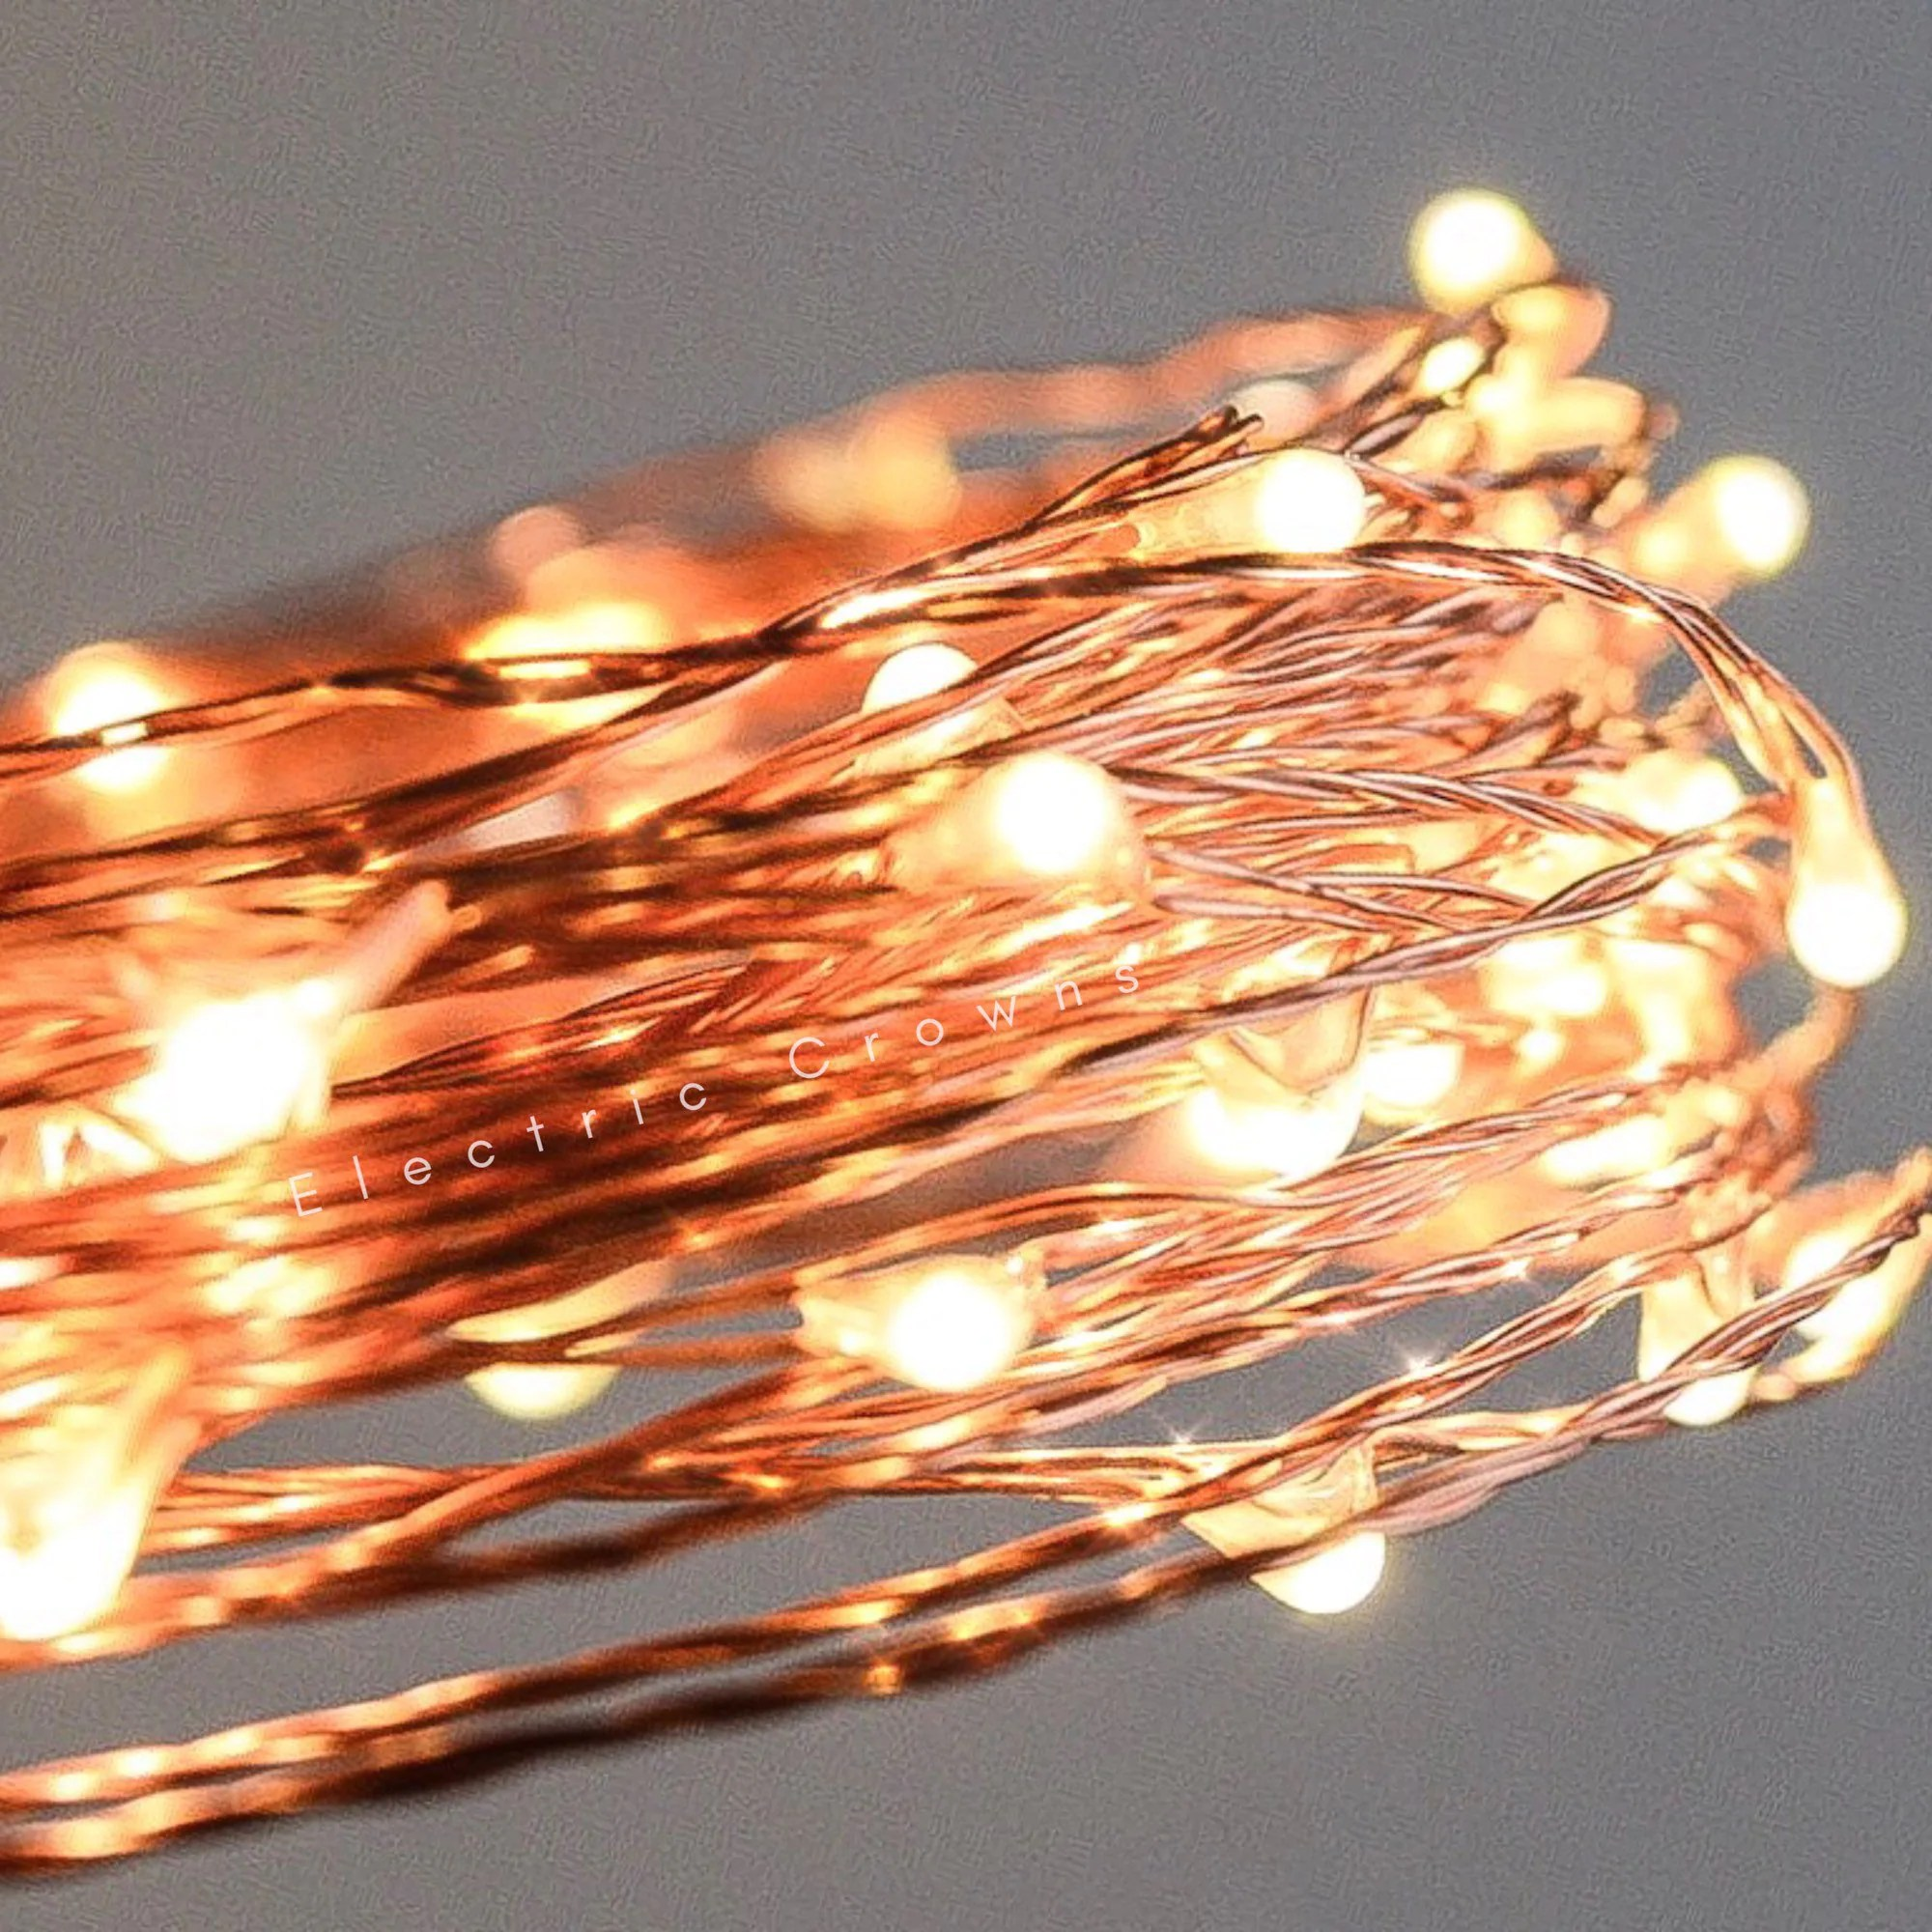 copper wire fairy lights patio string lights rustic wedding barn wedding wedding lighting warm white plug battery operated 13ft 65ft